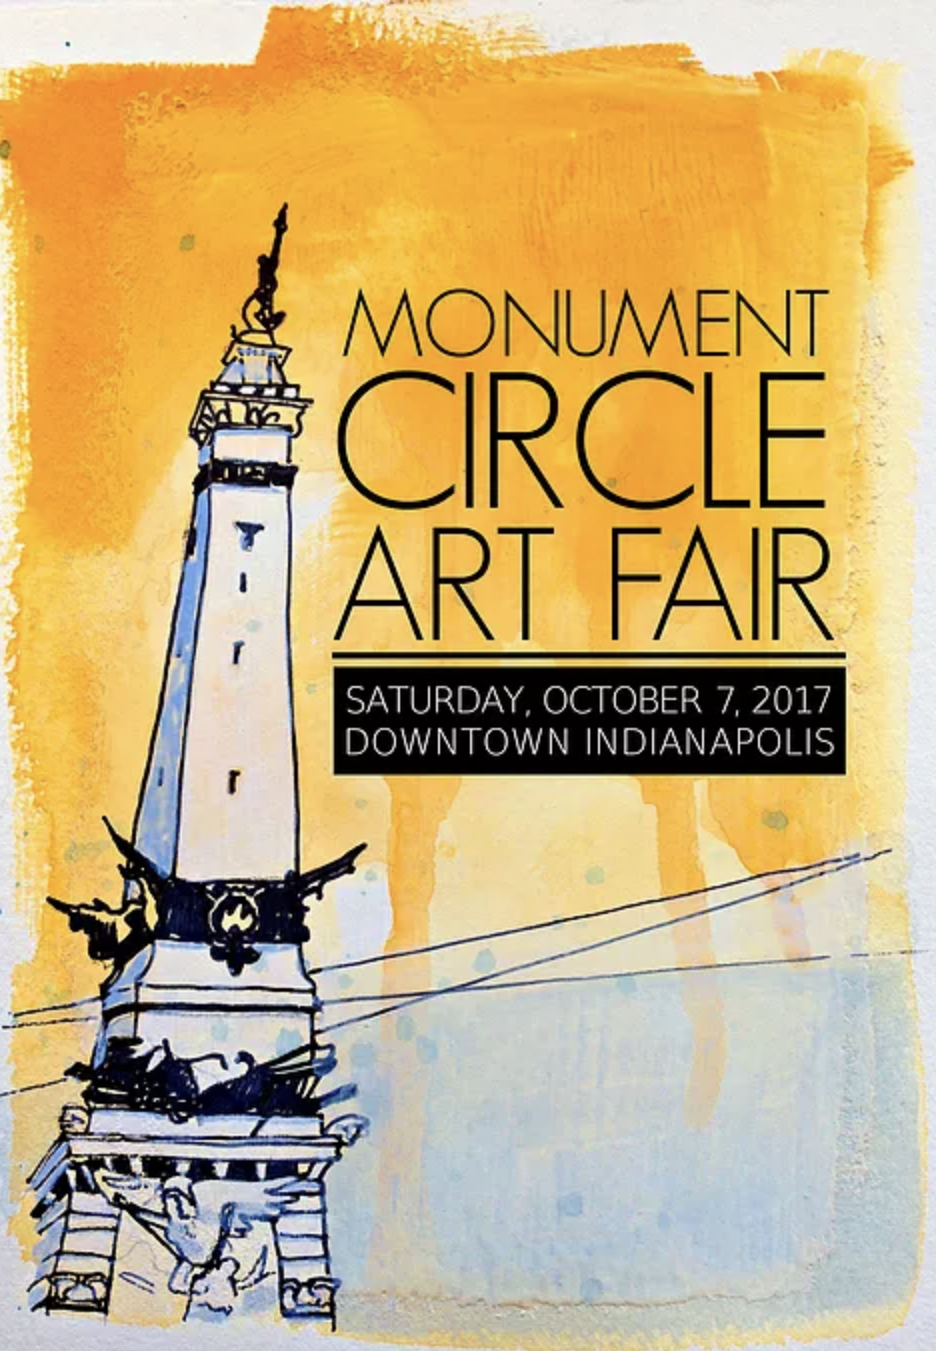 Photo from Monument Circle Art Fair website.